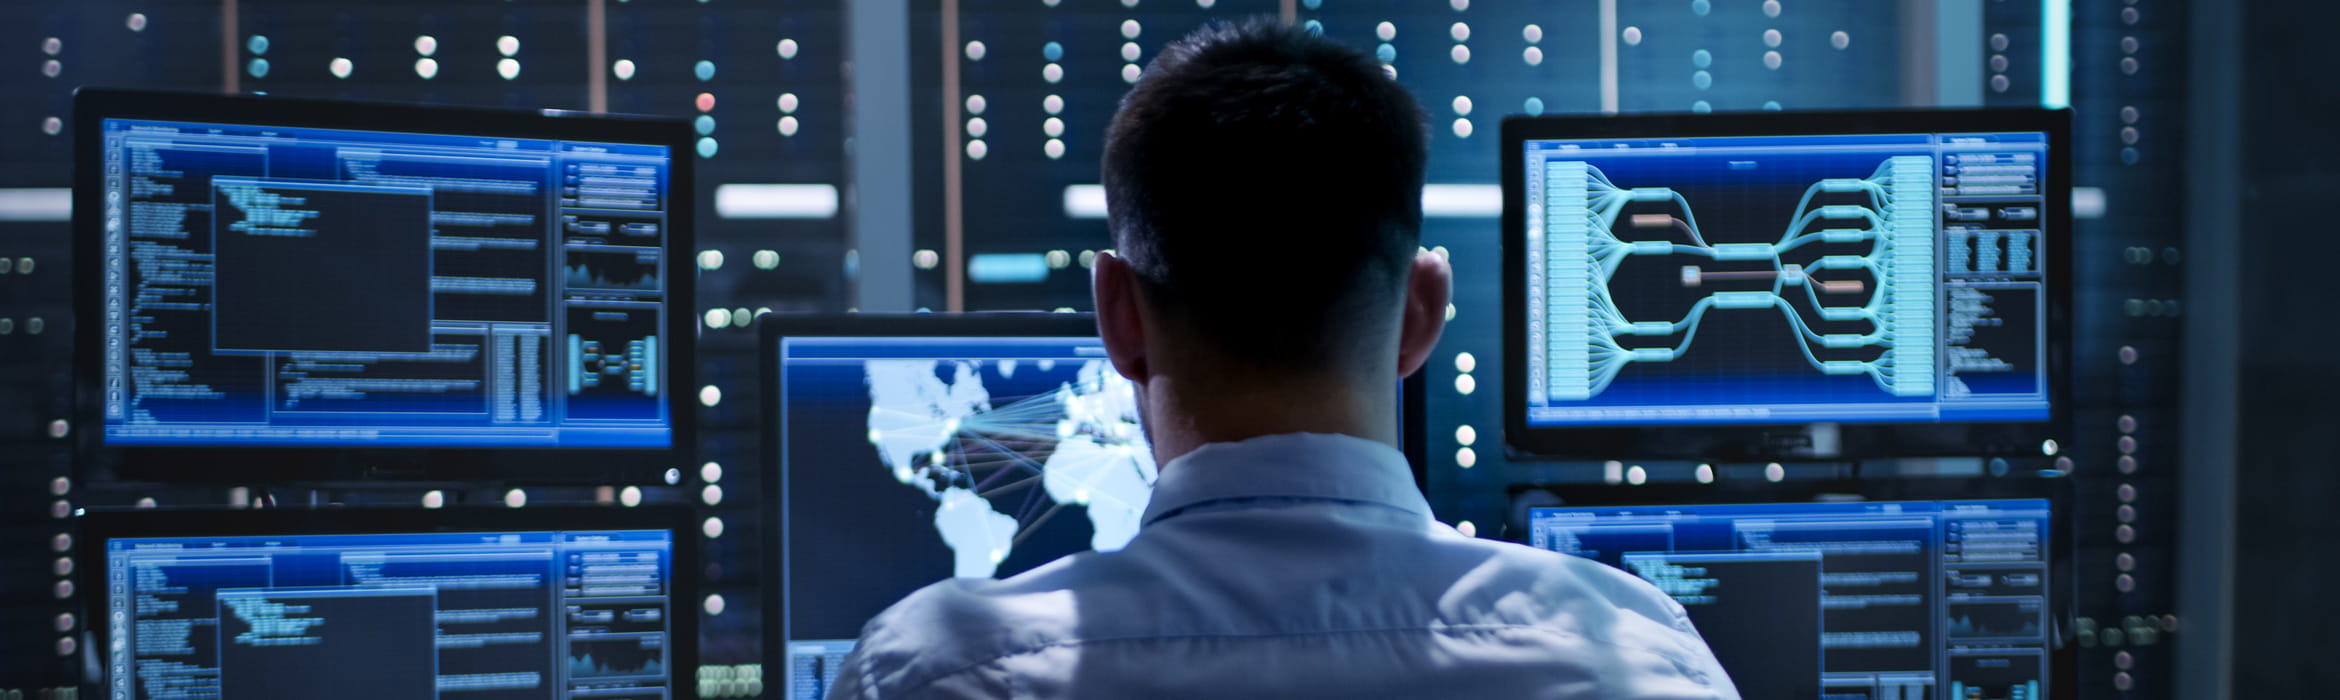 System security specialist sat at system control centre